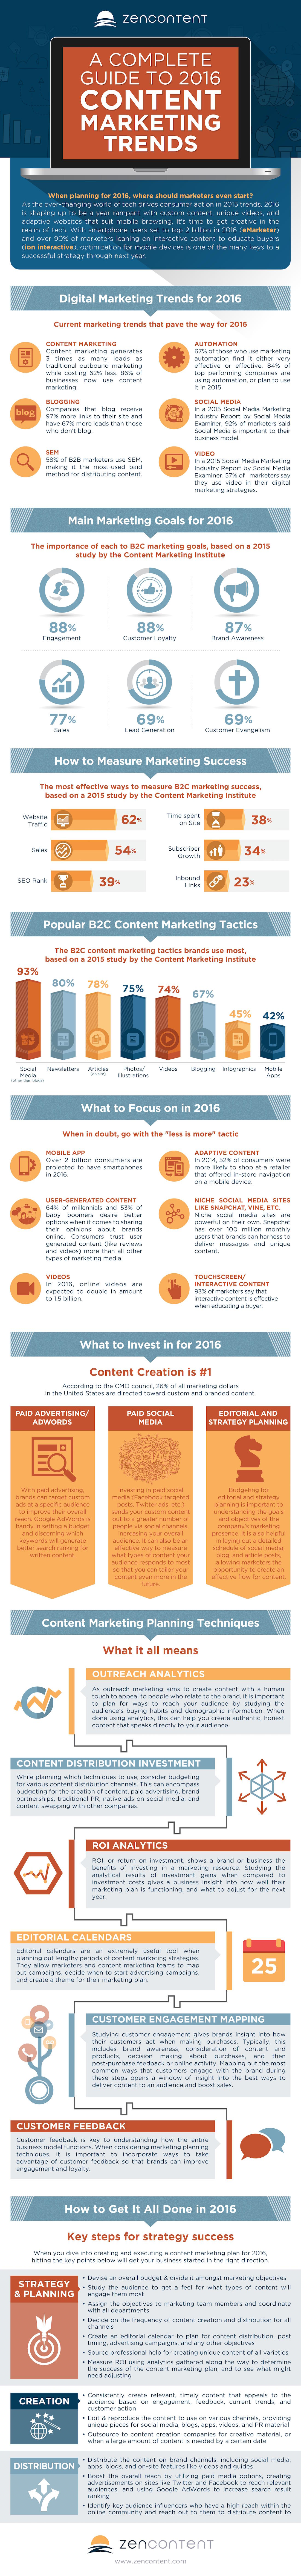 Complete Guide To 2016 Content Marketing [Infographic]